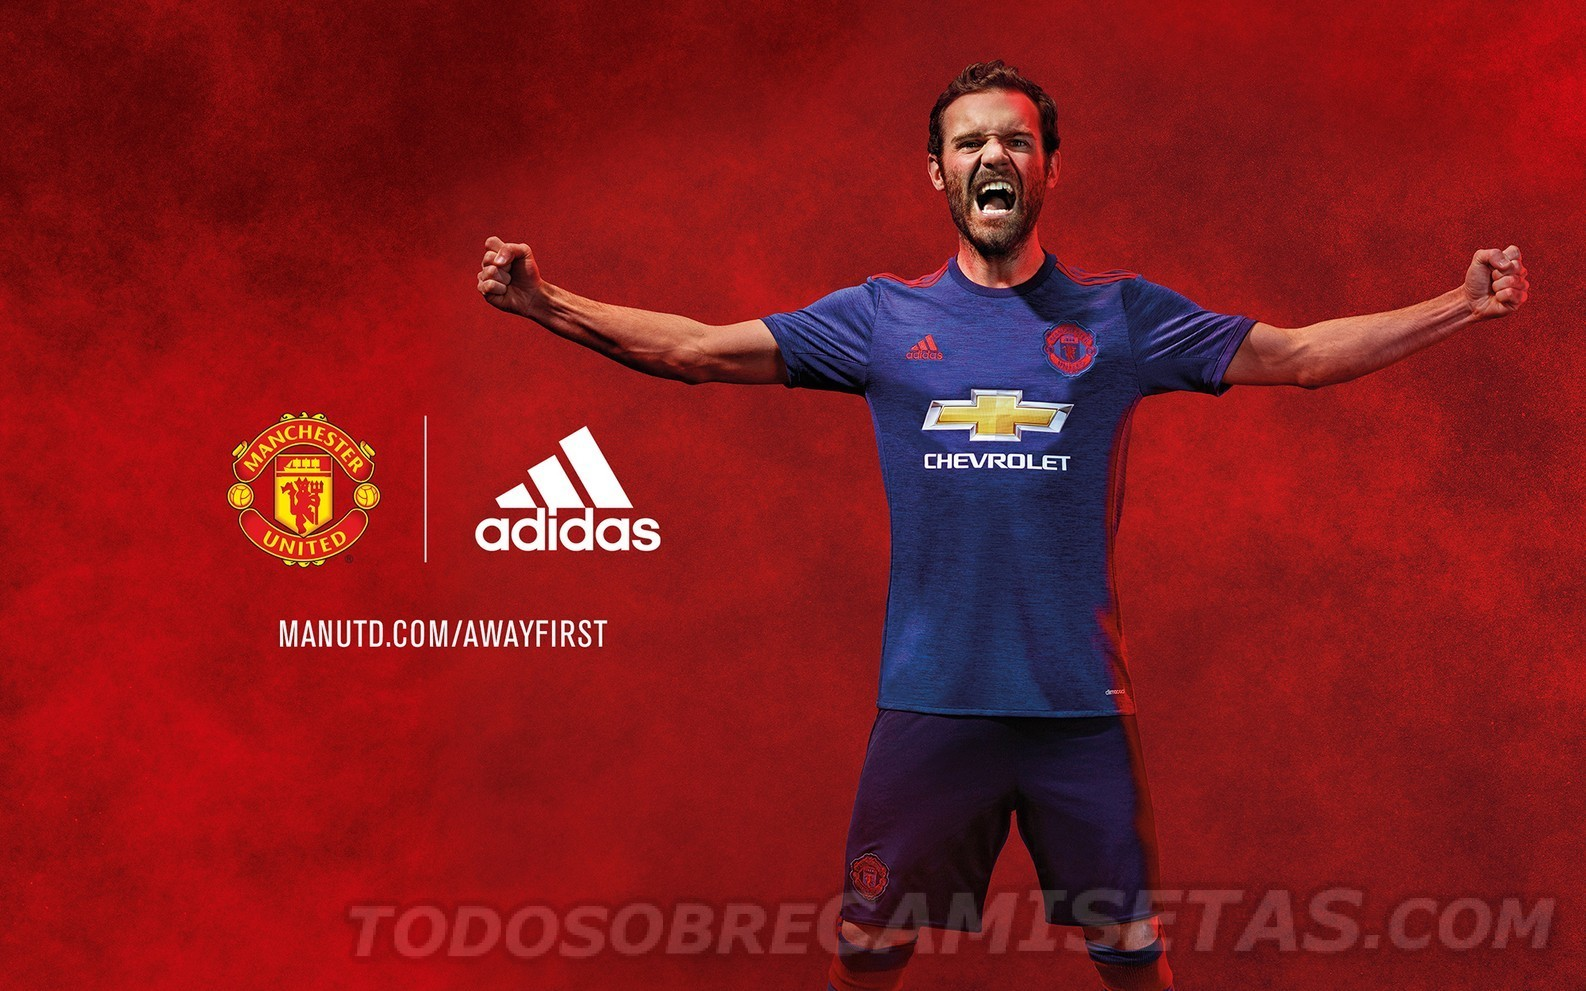 Manchester-United-2016-17-adidas-new-away-kit-10.jpg